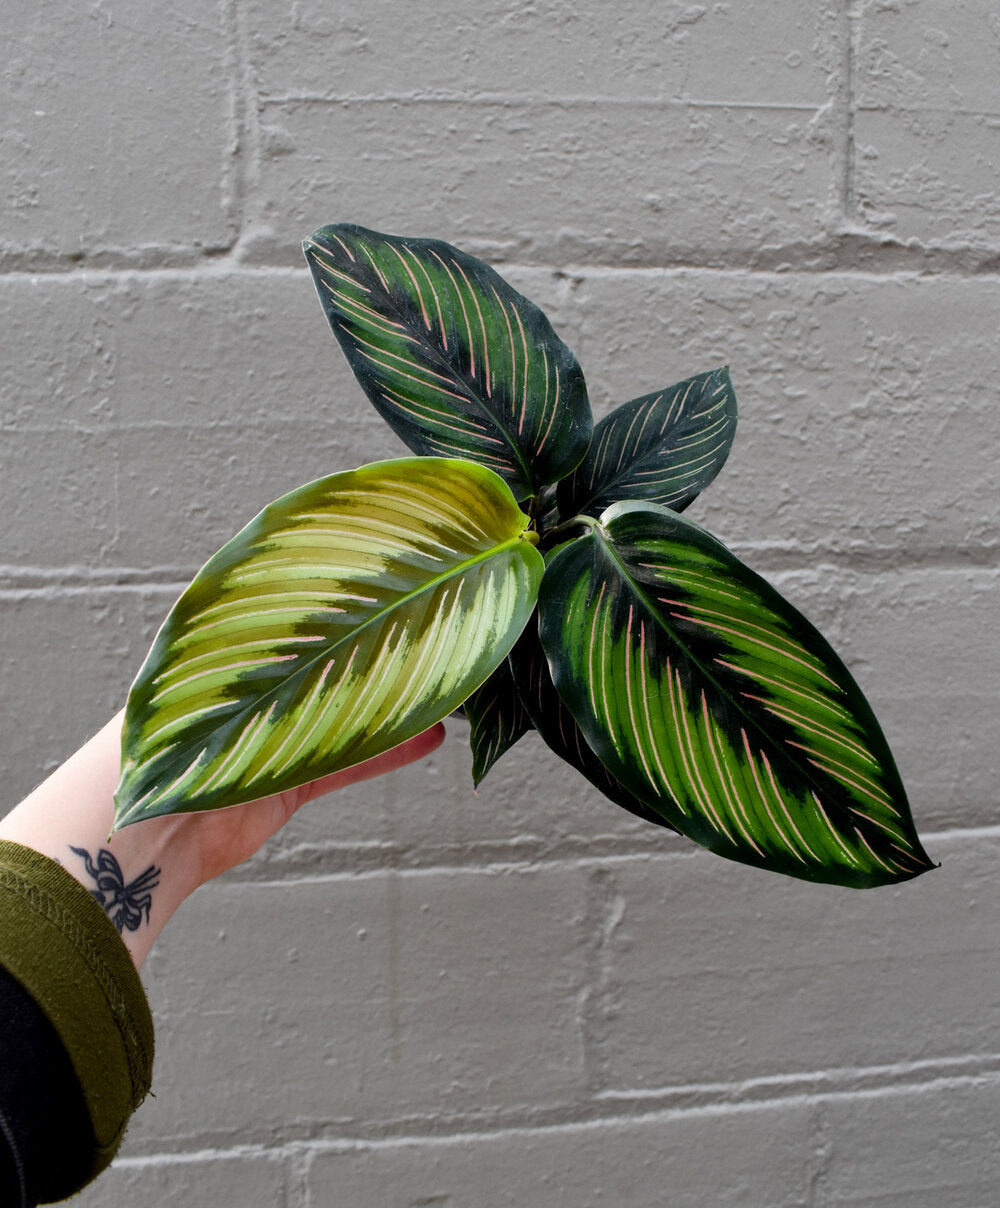 calathea beauty star - Light: Bright filtered lightWater: They require consistent watering and don't want their soil to dry out much between waterings. We recommend doing frequent light waterings and allowing the soil to consistently feel like a rung out sponge.Extra Tips: Calathea's leaves curl up at night, this is totally normal, don't panic! They will unfurl again in the morning.